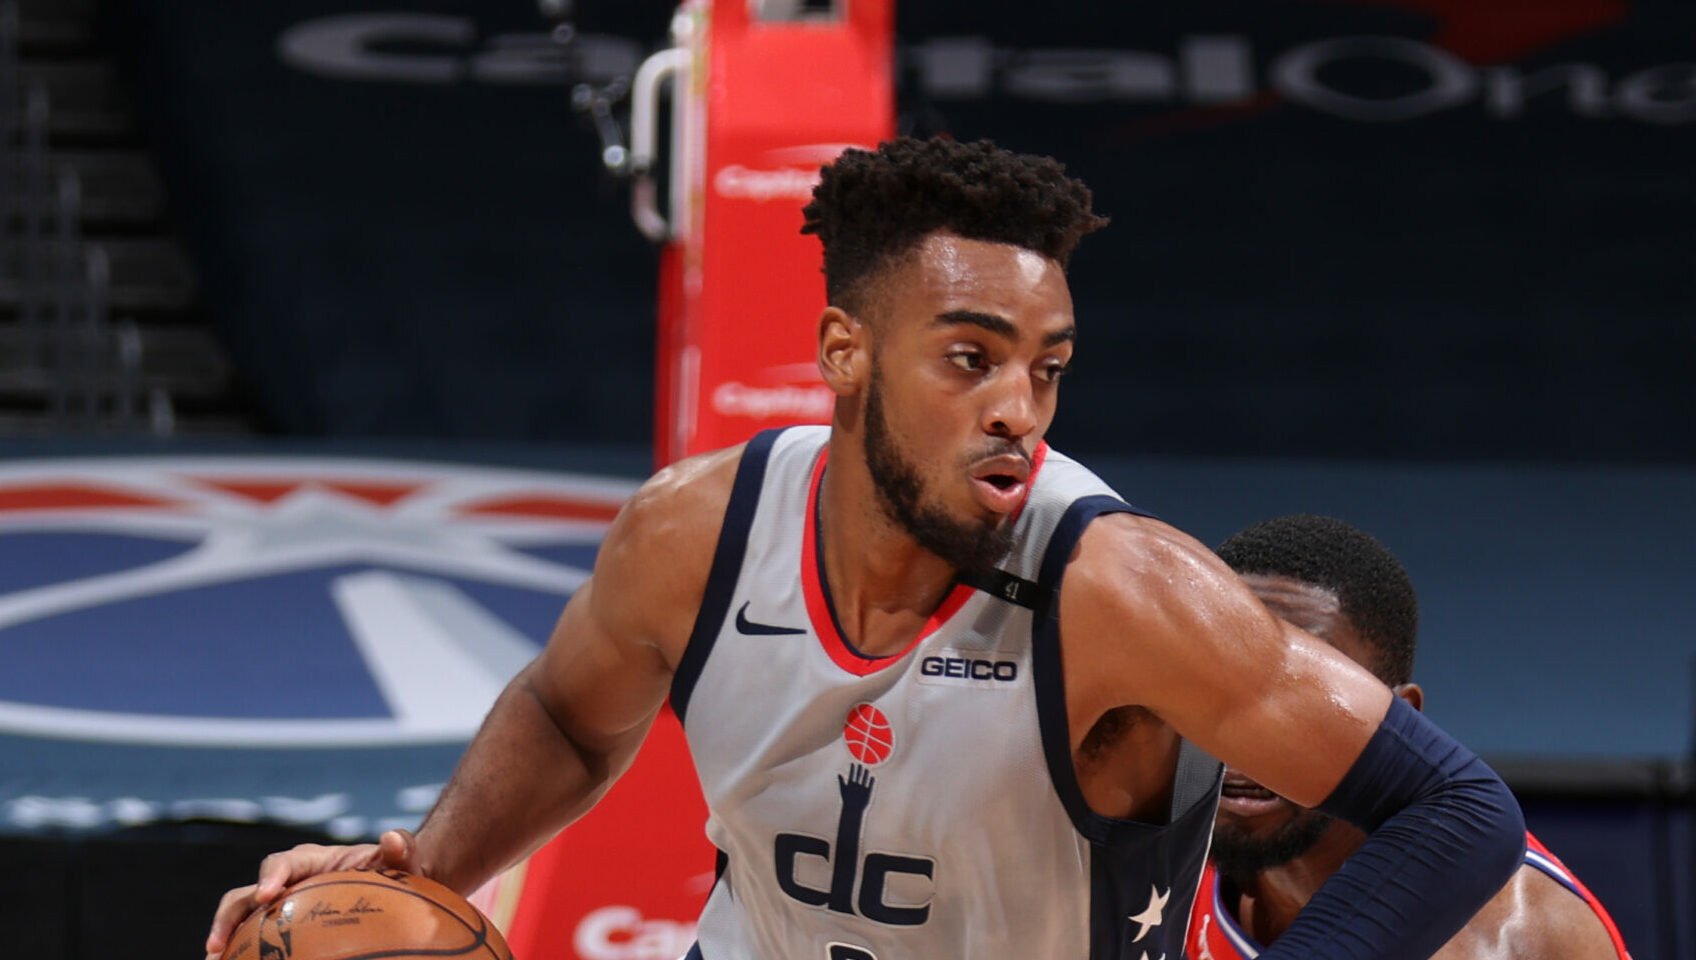 Bulls acquire Troy Brown, Daniel Theis in 3-team trade with Wizards, Celtics